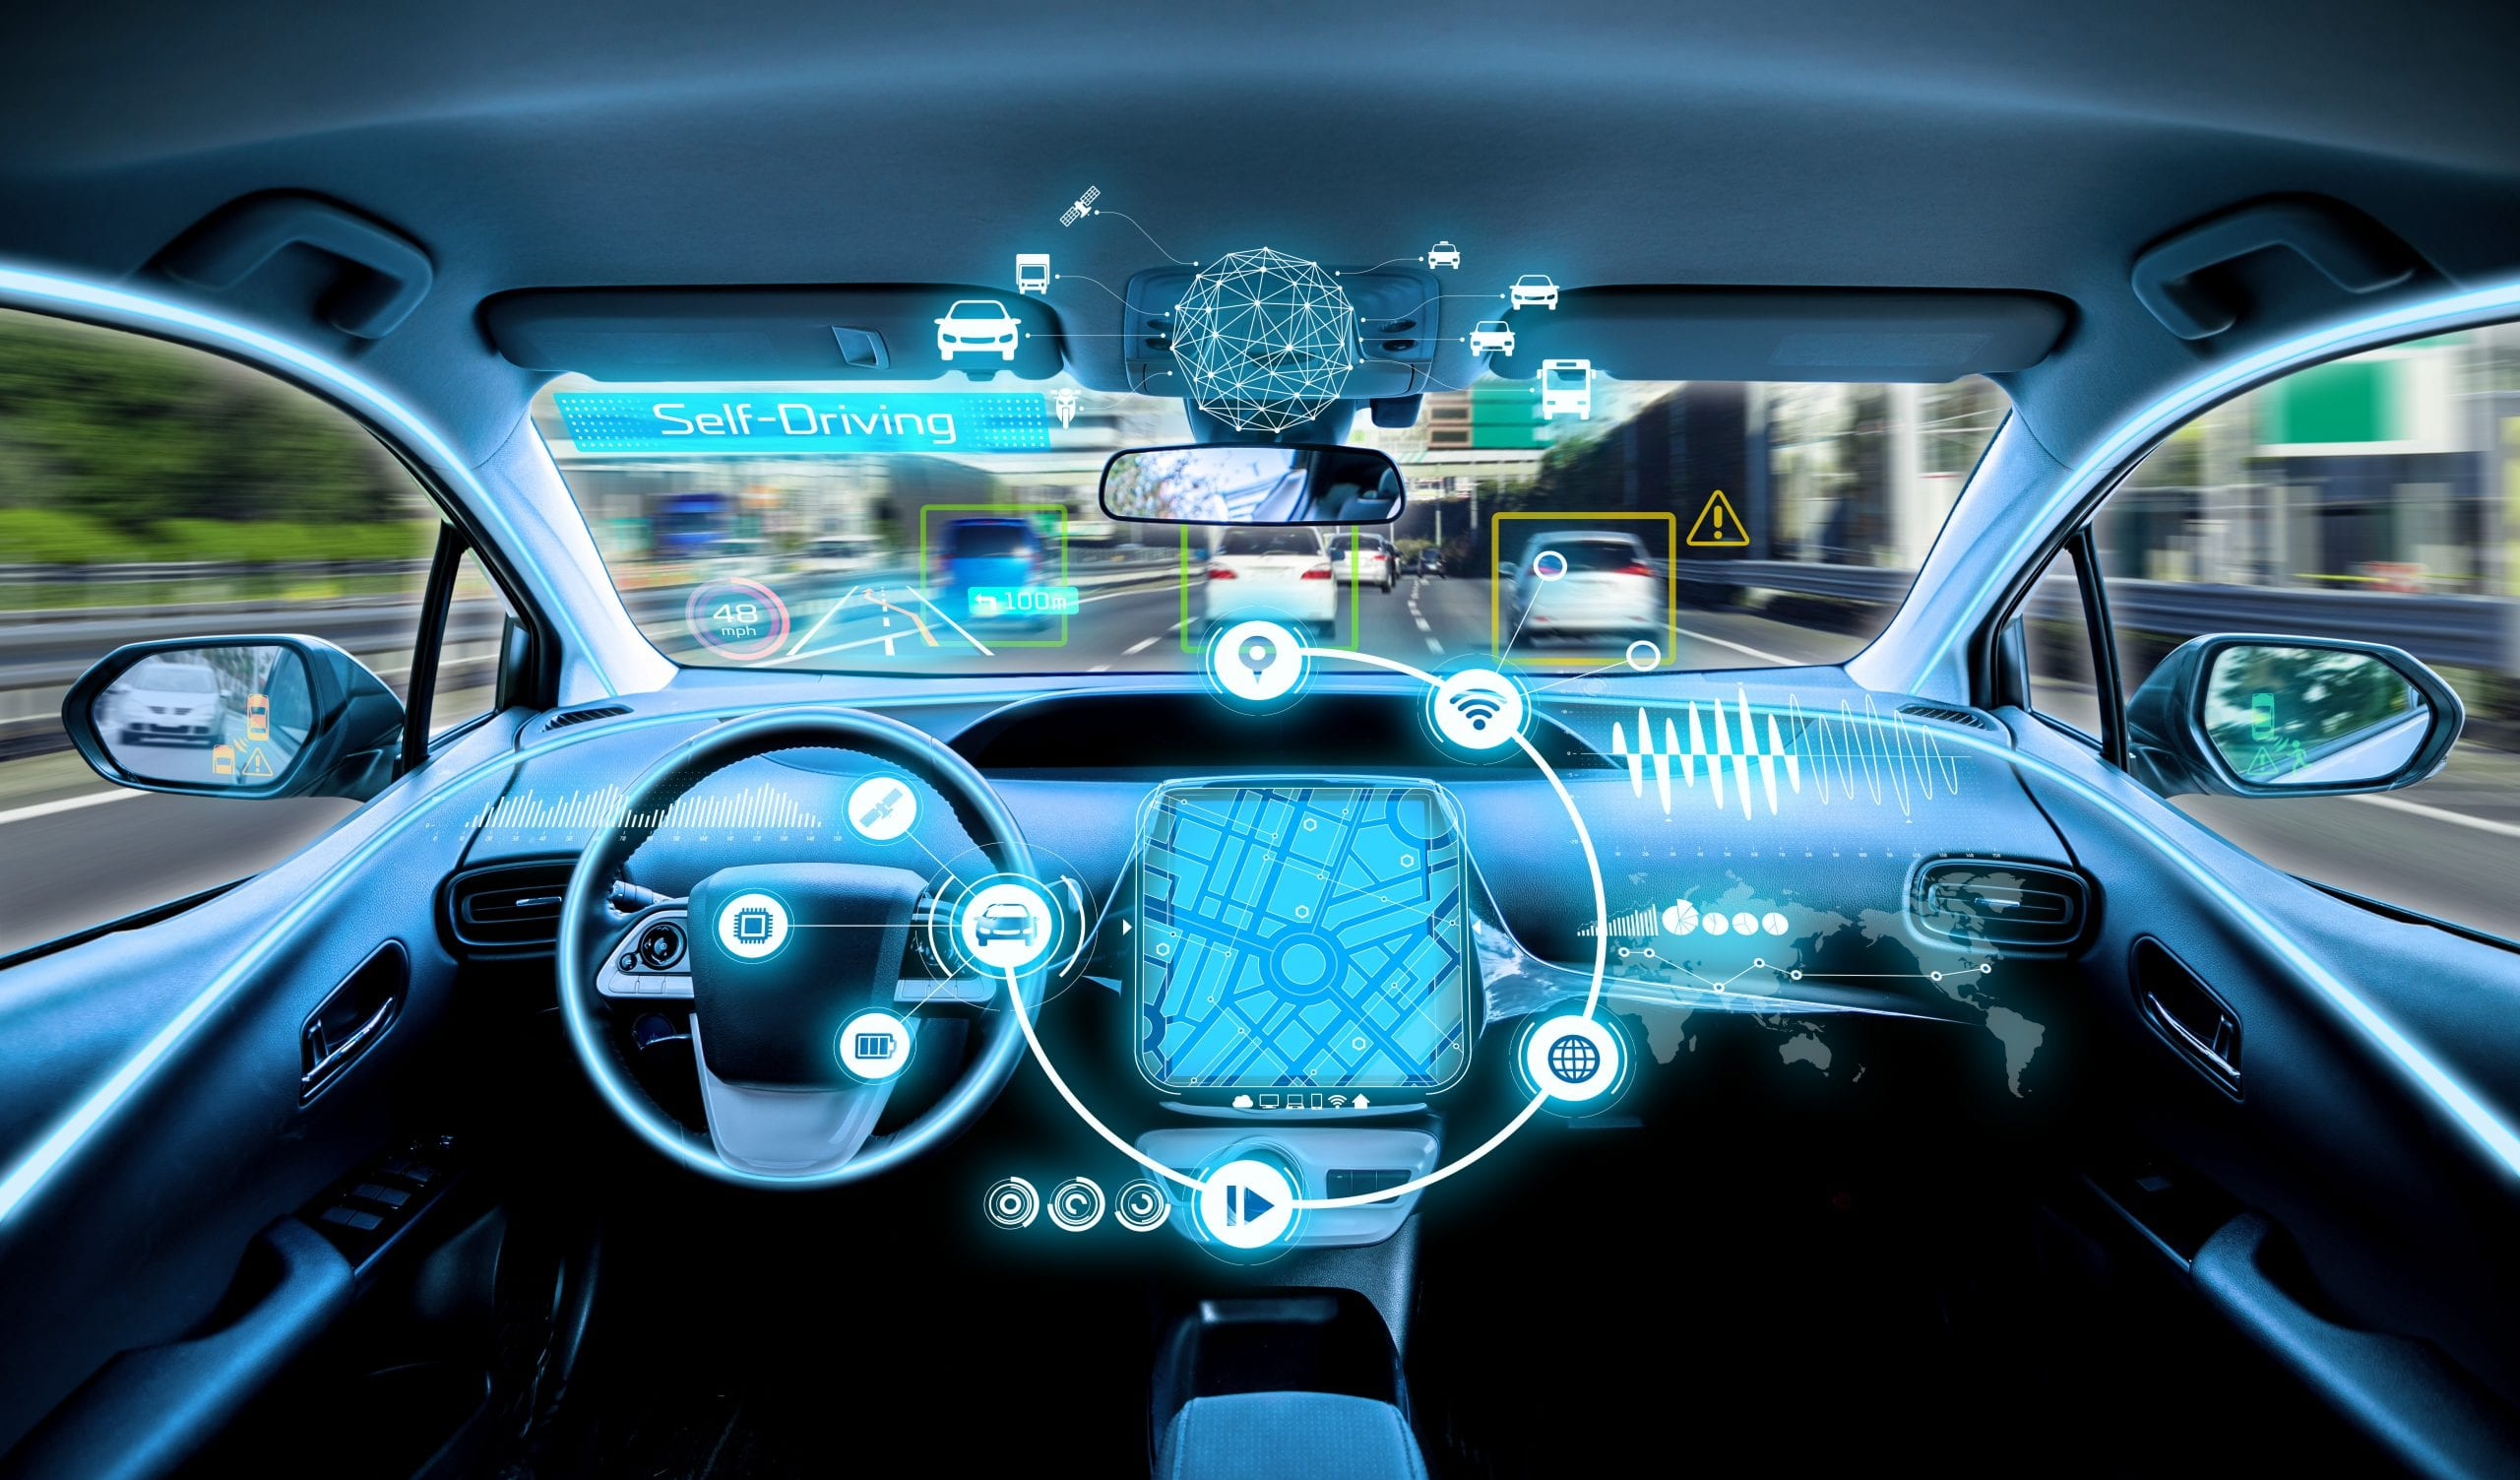 Inside of car showing potential cyber threats